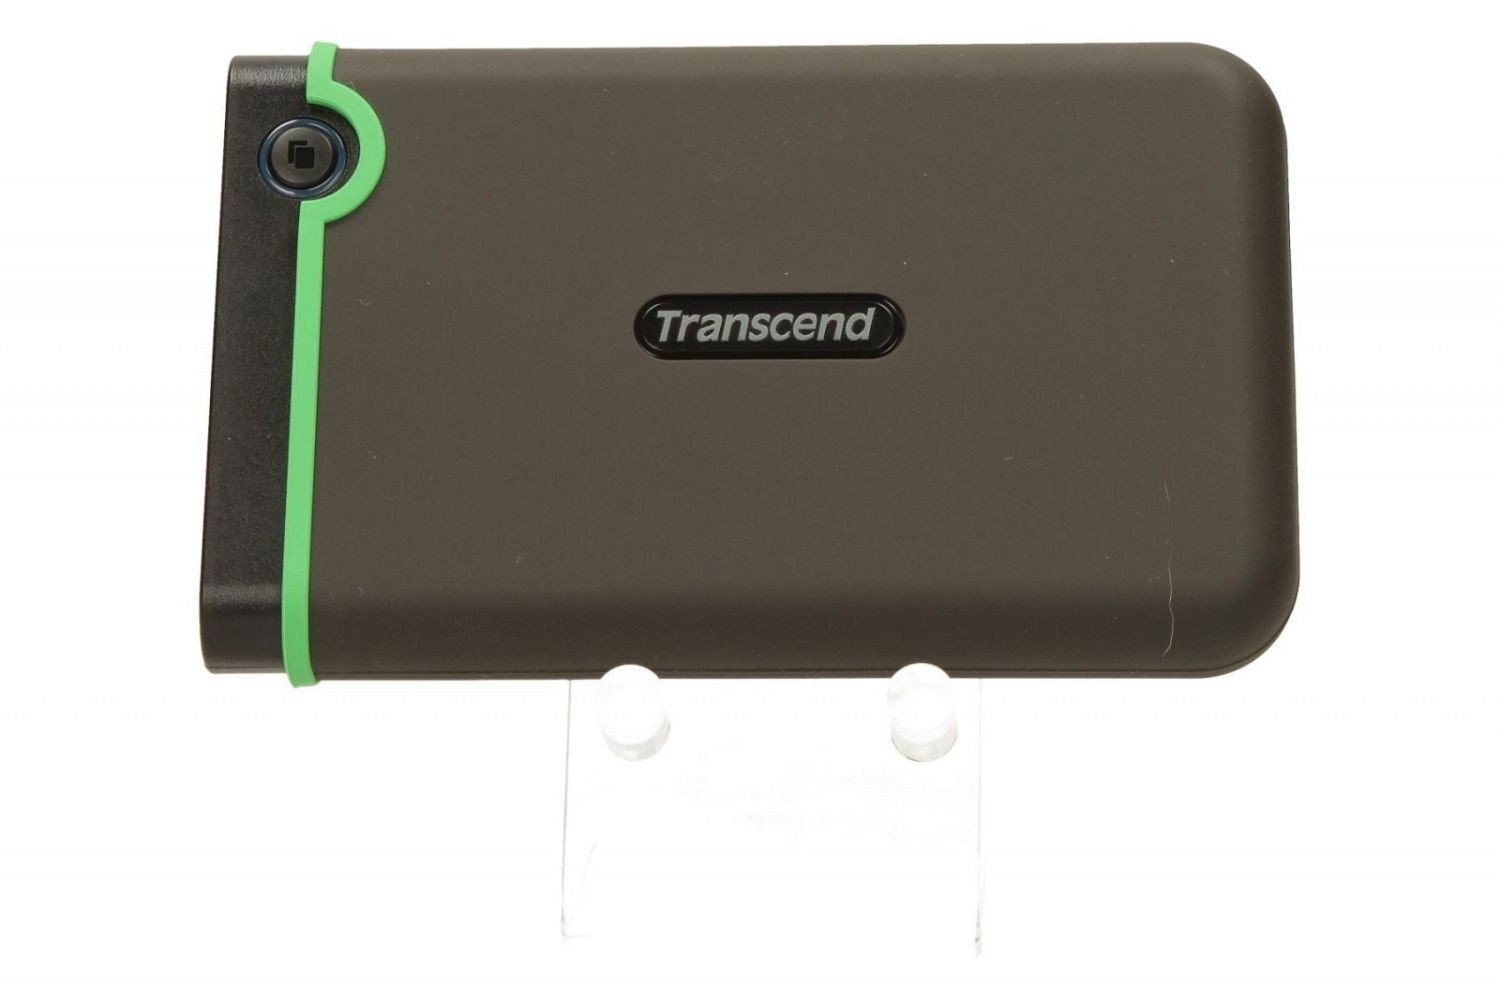 Transcend StoreJet 25 M3 1TB 2.5' USB3.0 Black - Rubber Case, Anti-Shock